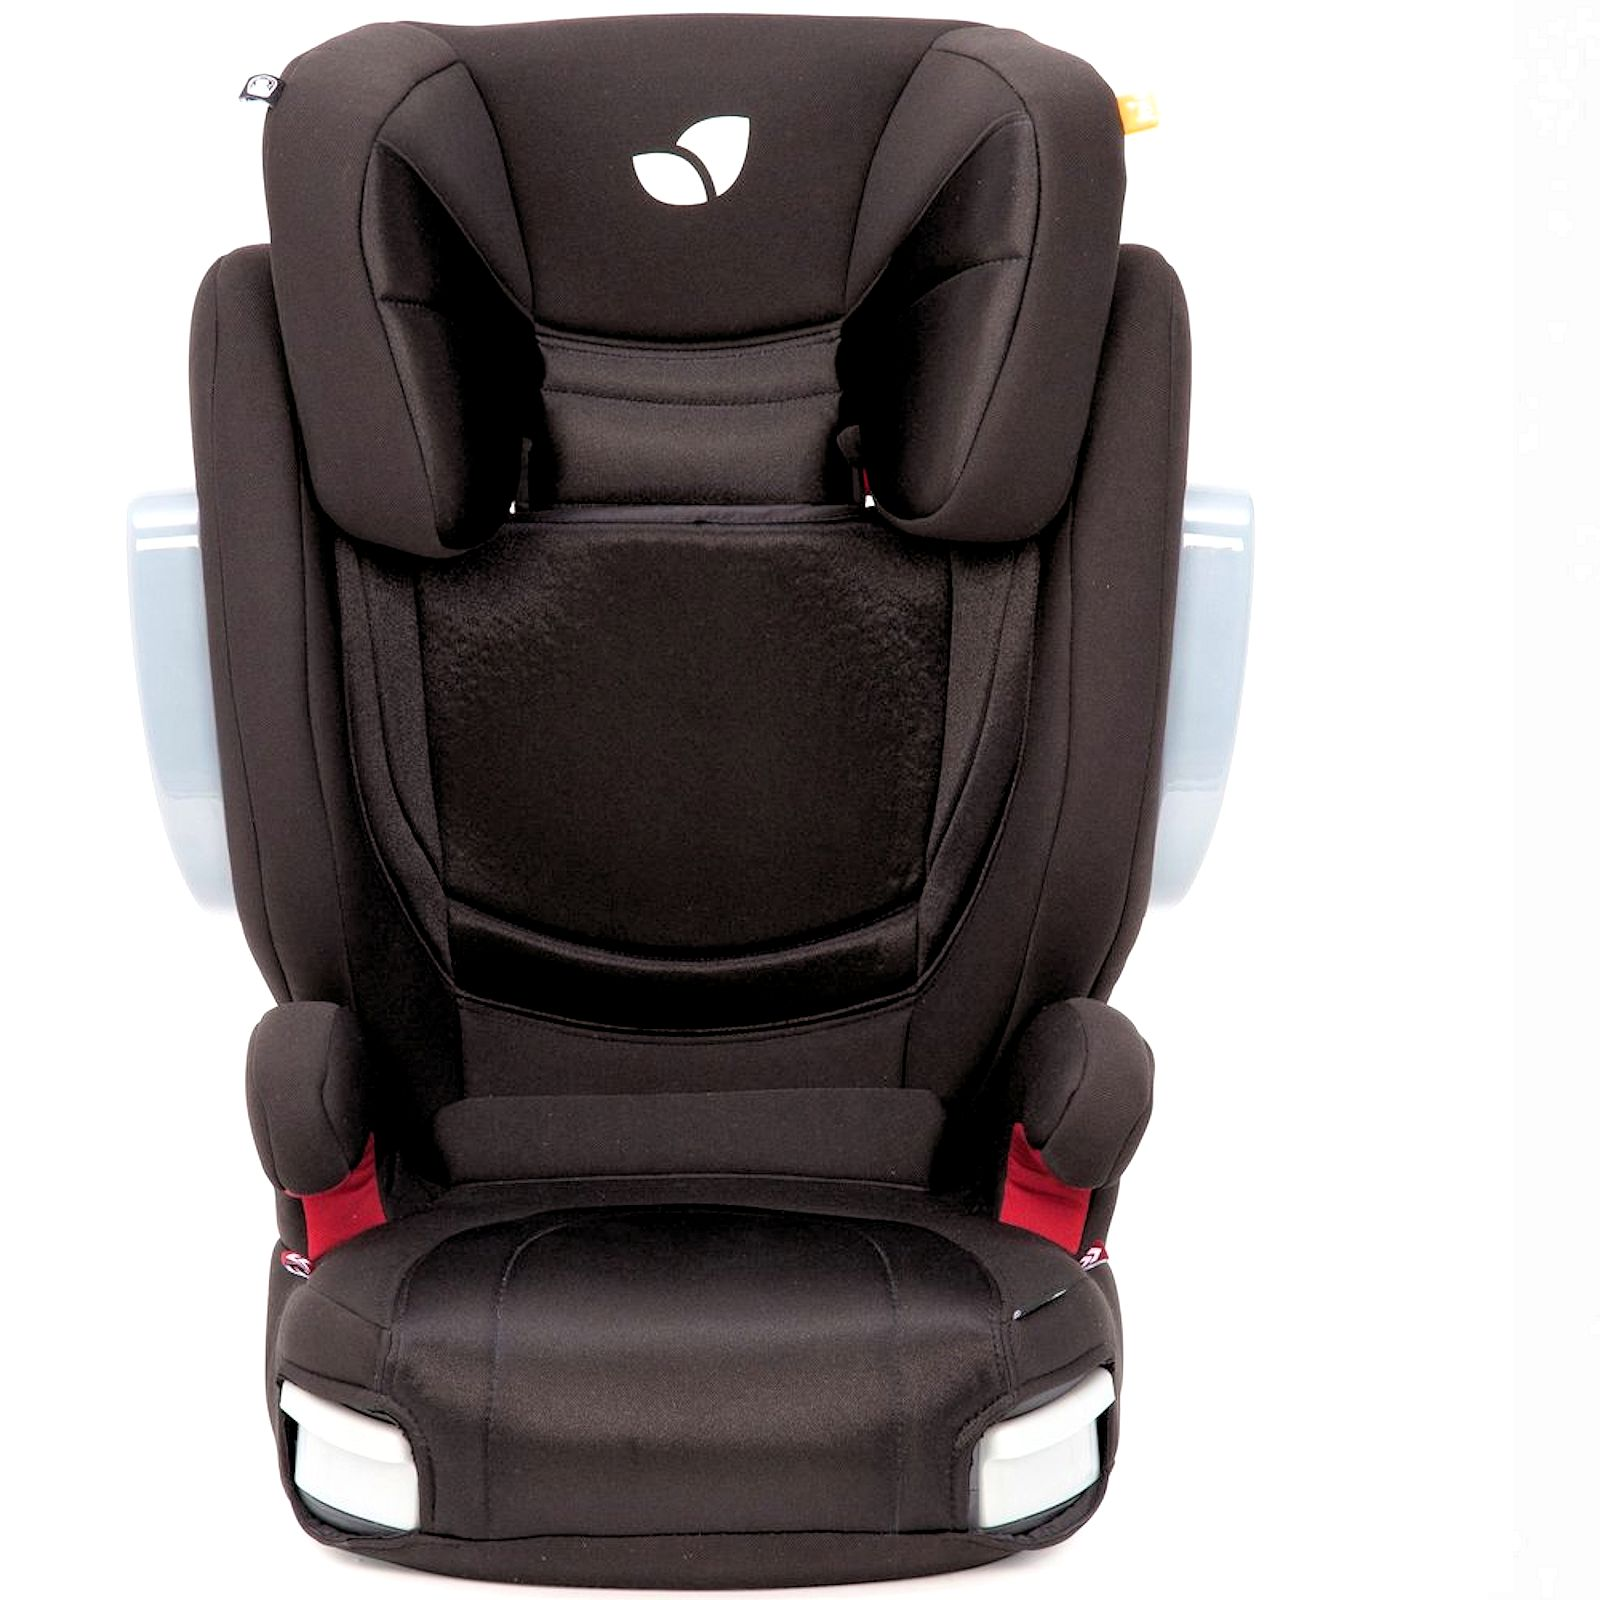 new joie inkwell trillo lx group 2 3 car seat childs booster isosafe carseat ebay. Black Bedroom Furniture Sets. Home Design Ideas